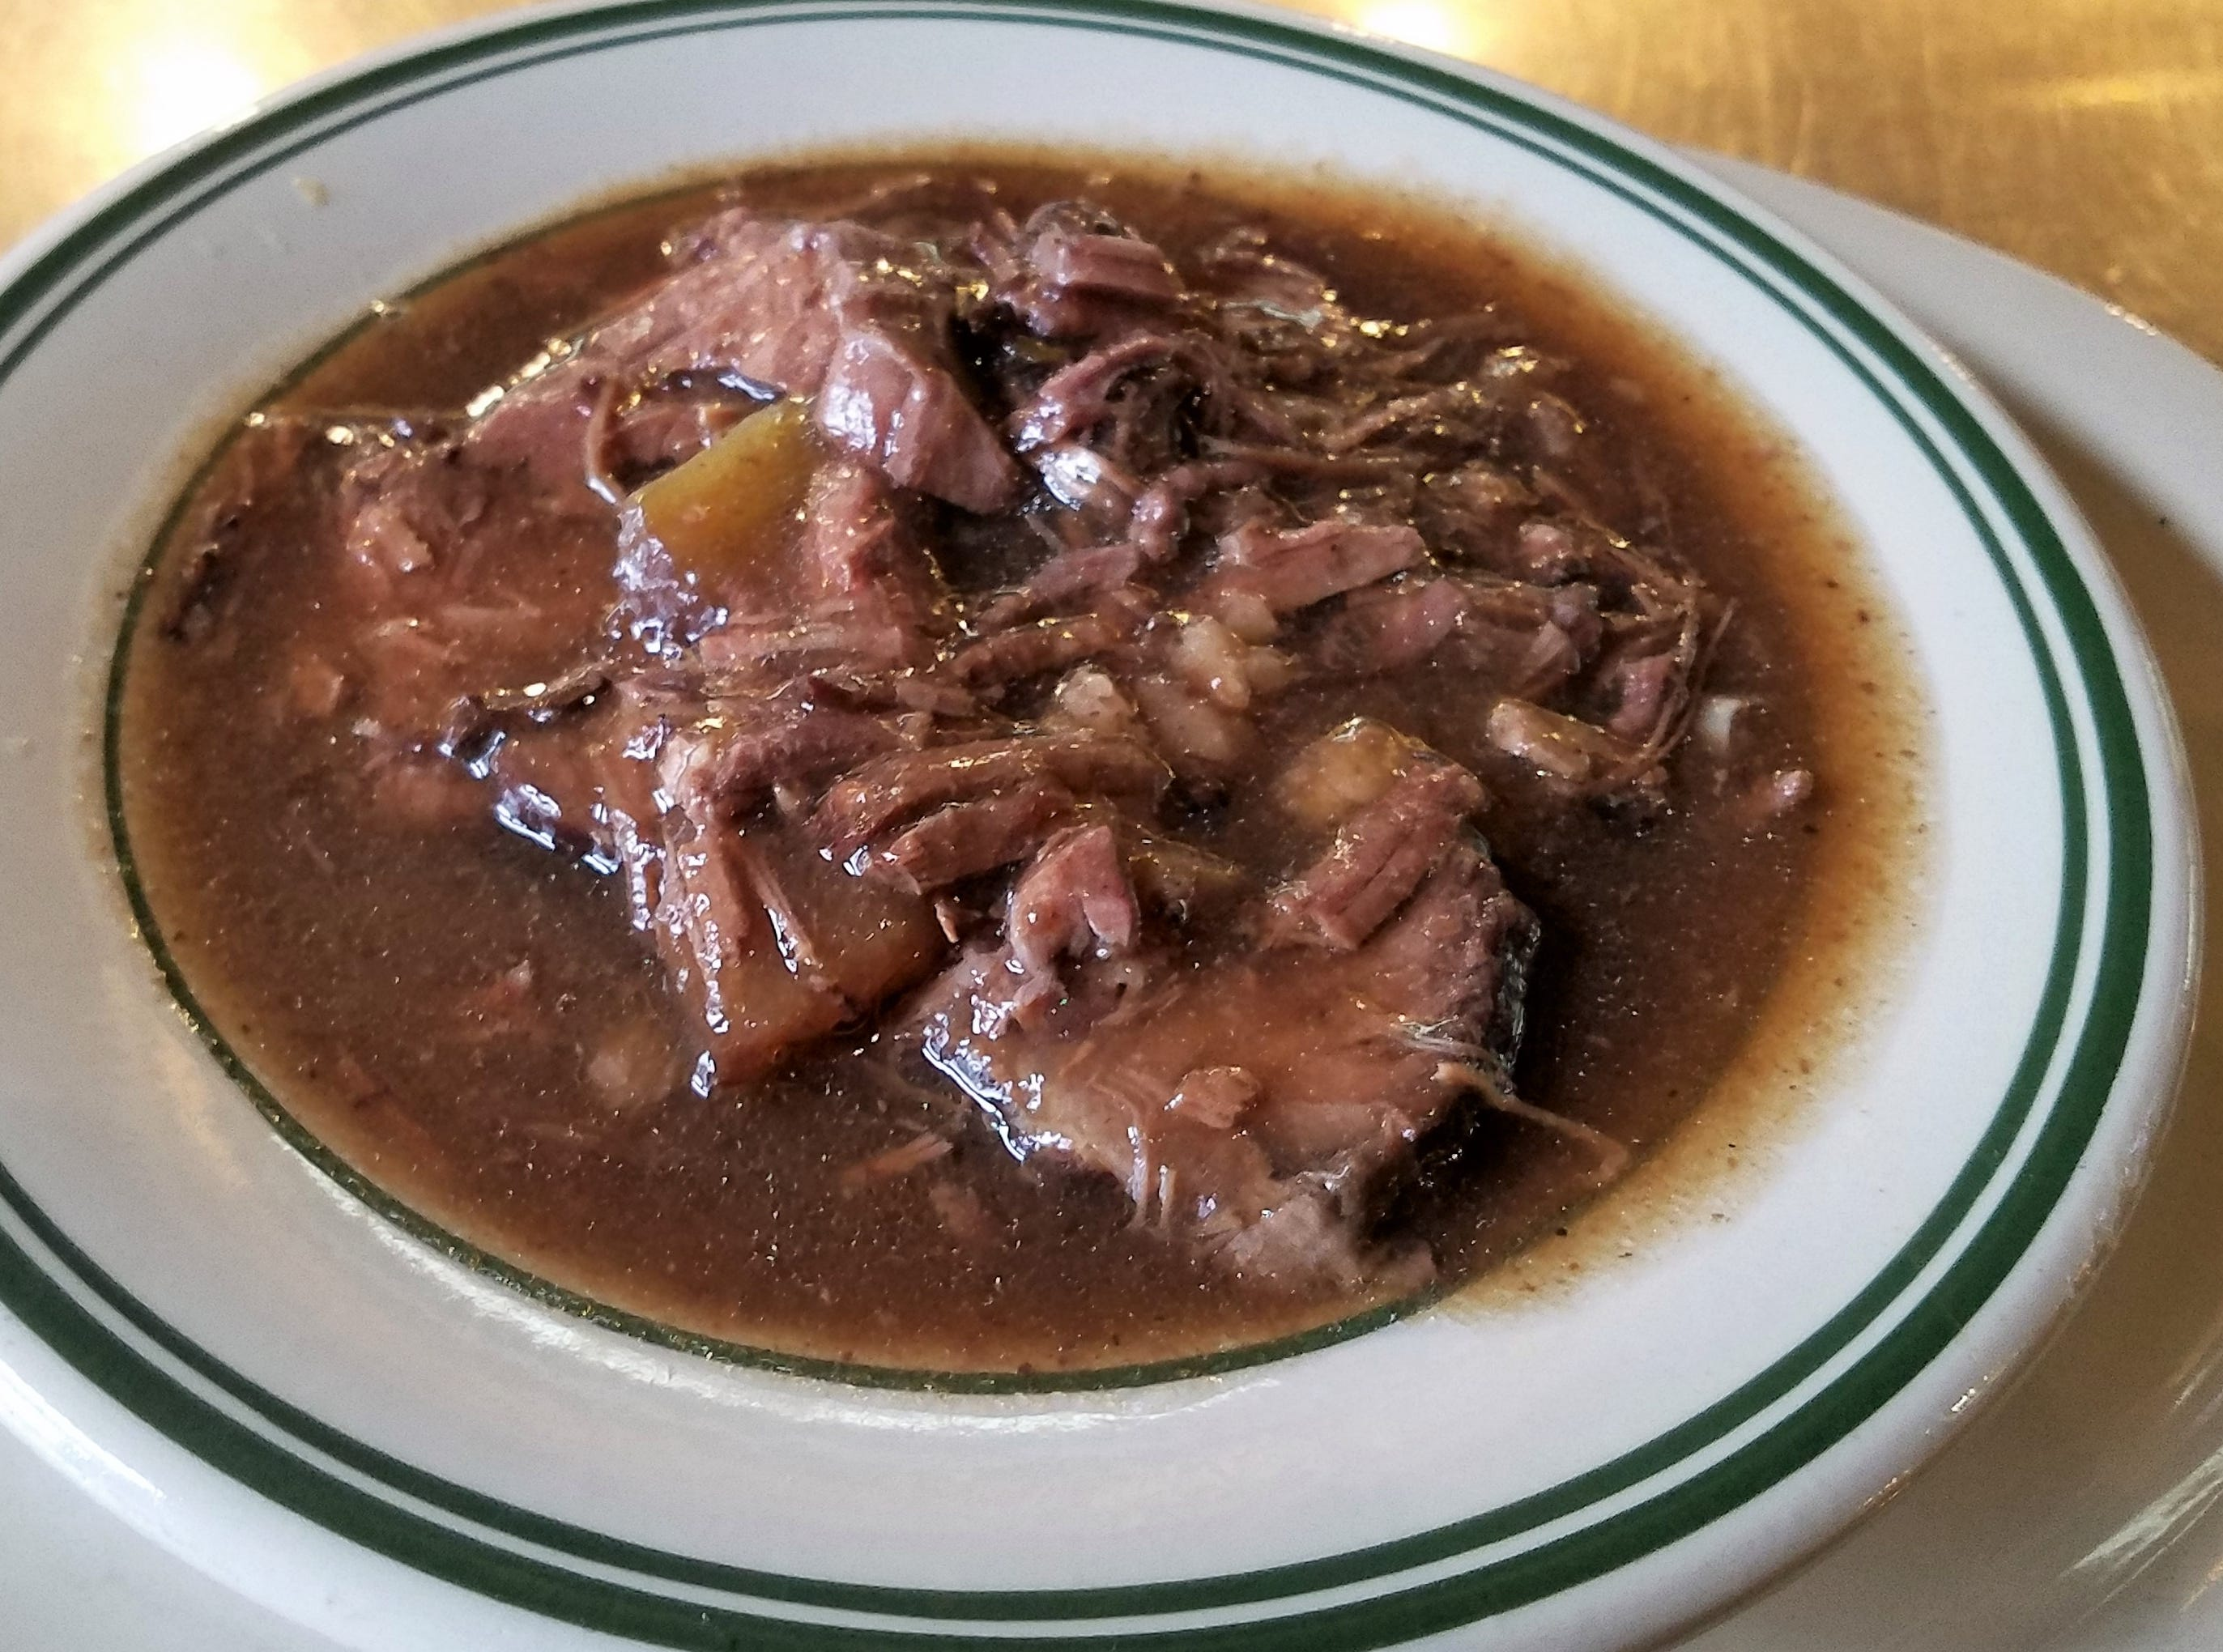 Sauerbraten is a favorite beef dish at the Gerst Haus, marinated for days in vinegar and wine before slow-cooking.